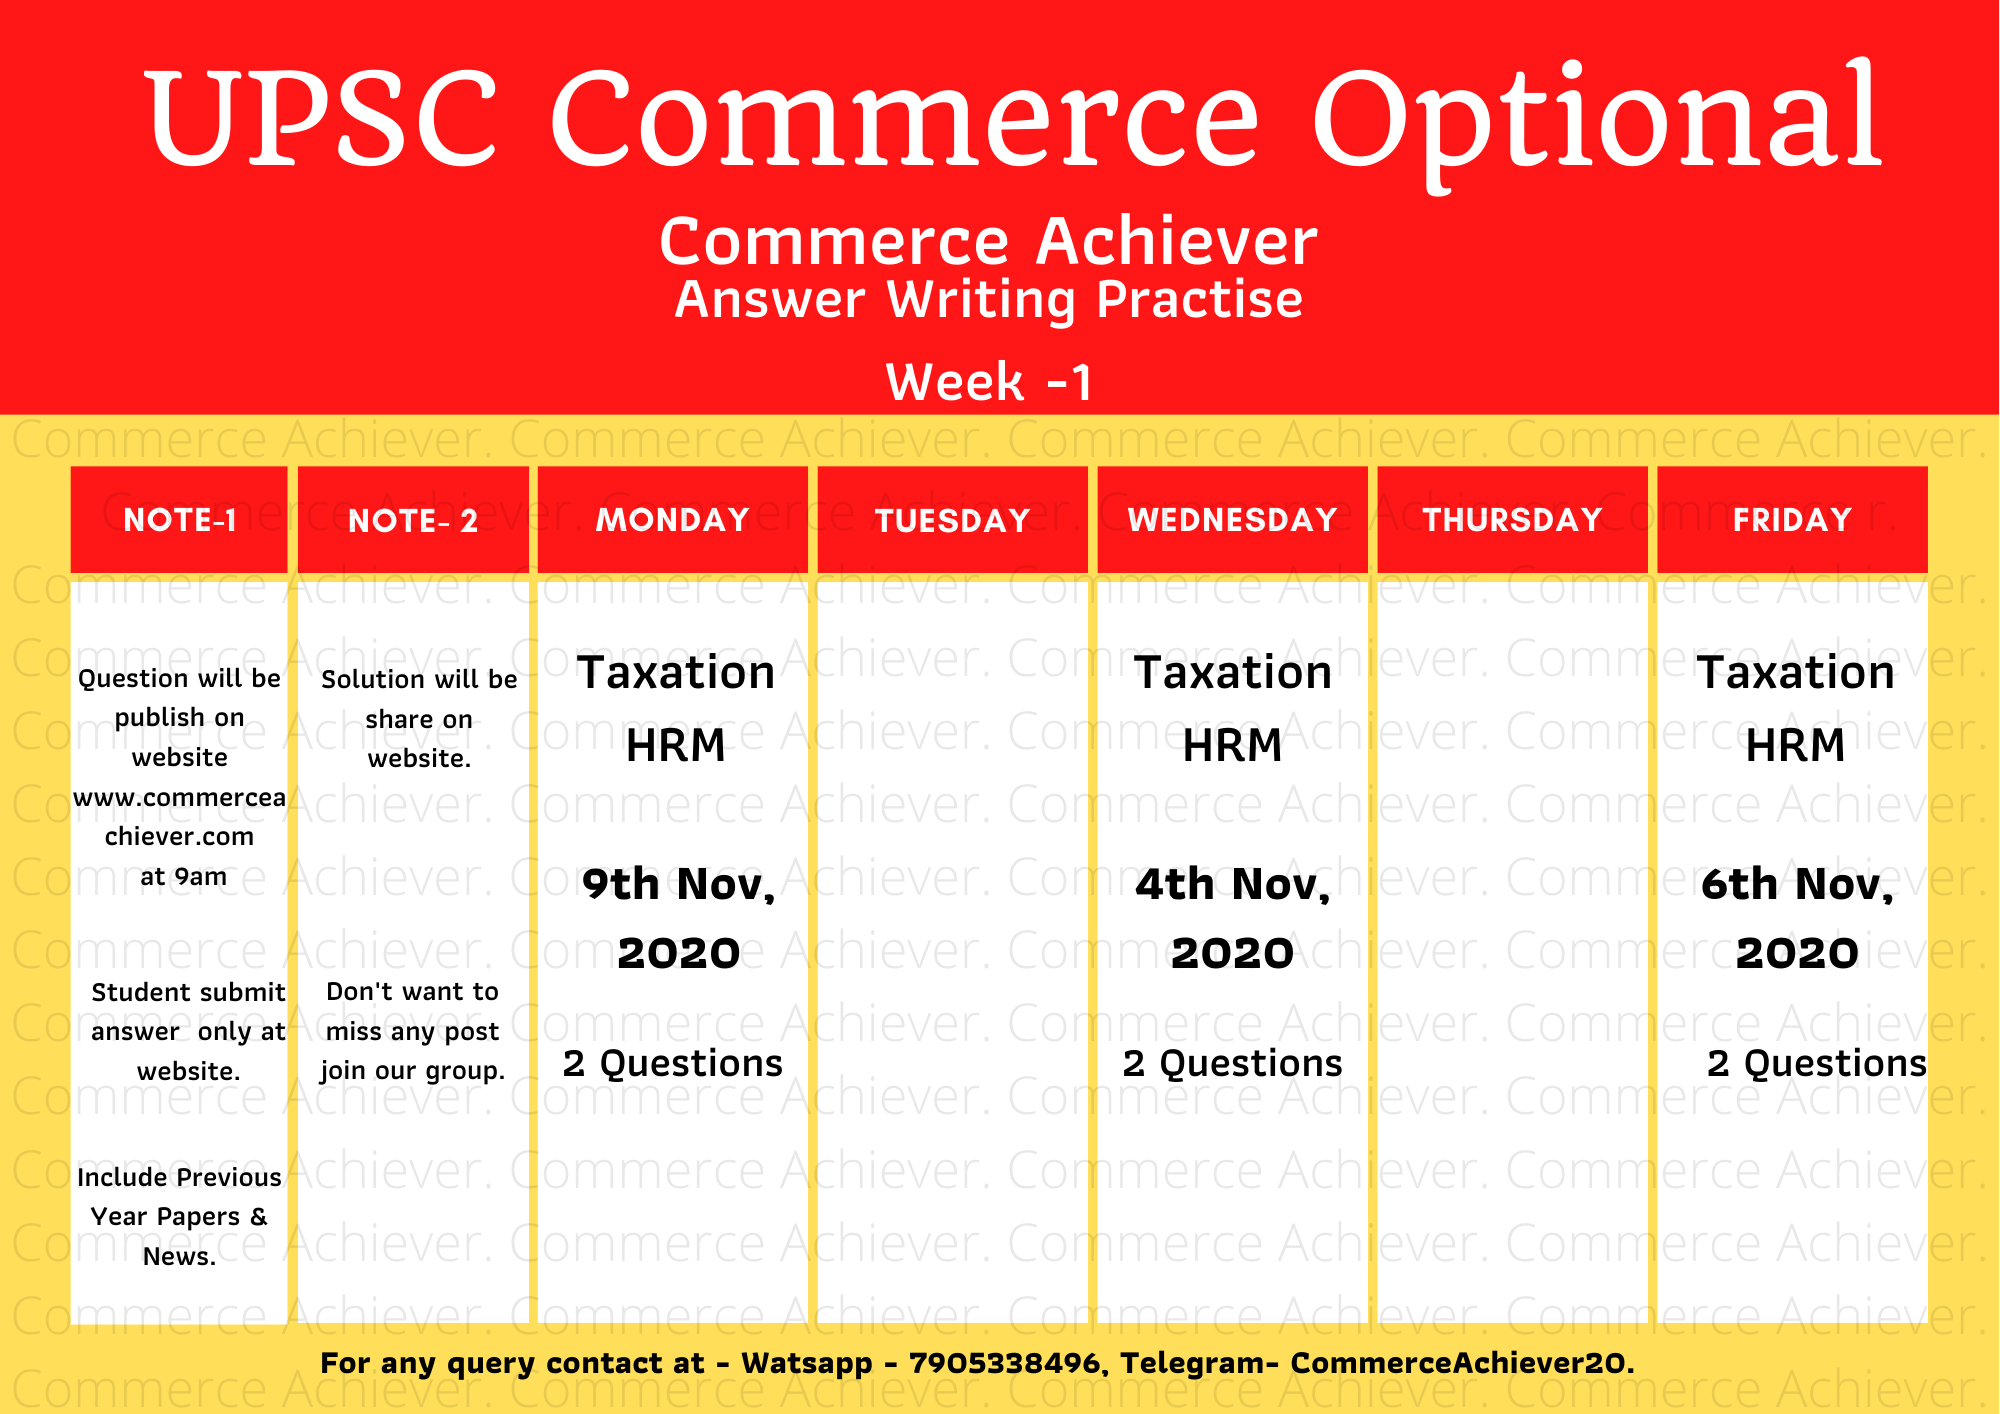 UPSC Commerce Optional – Answer Writing Practise – Week -1 Schedule